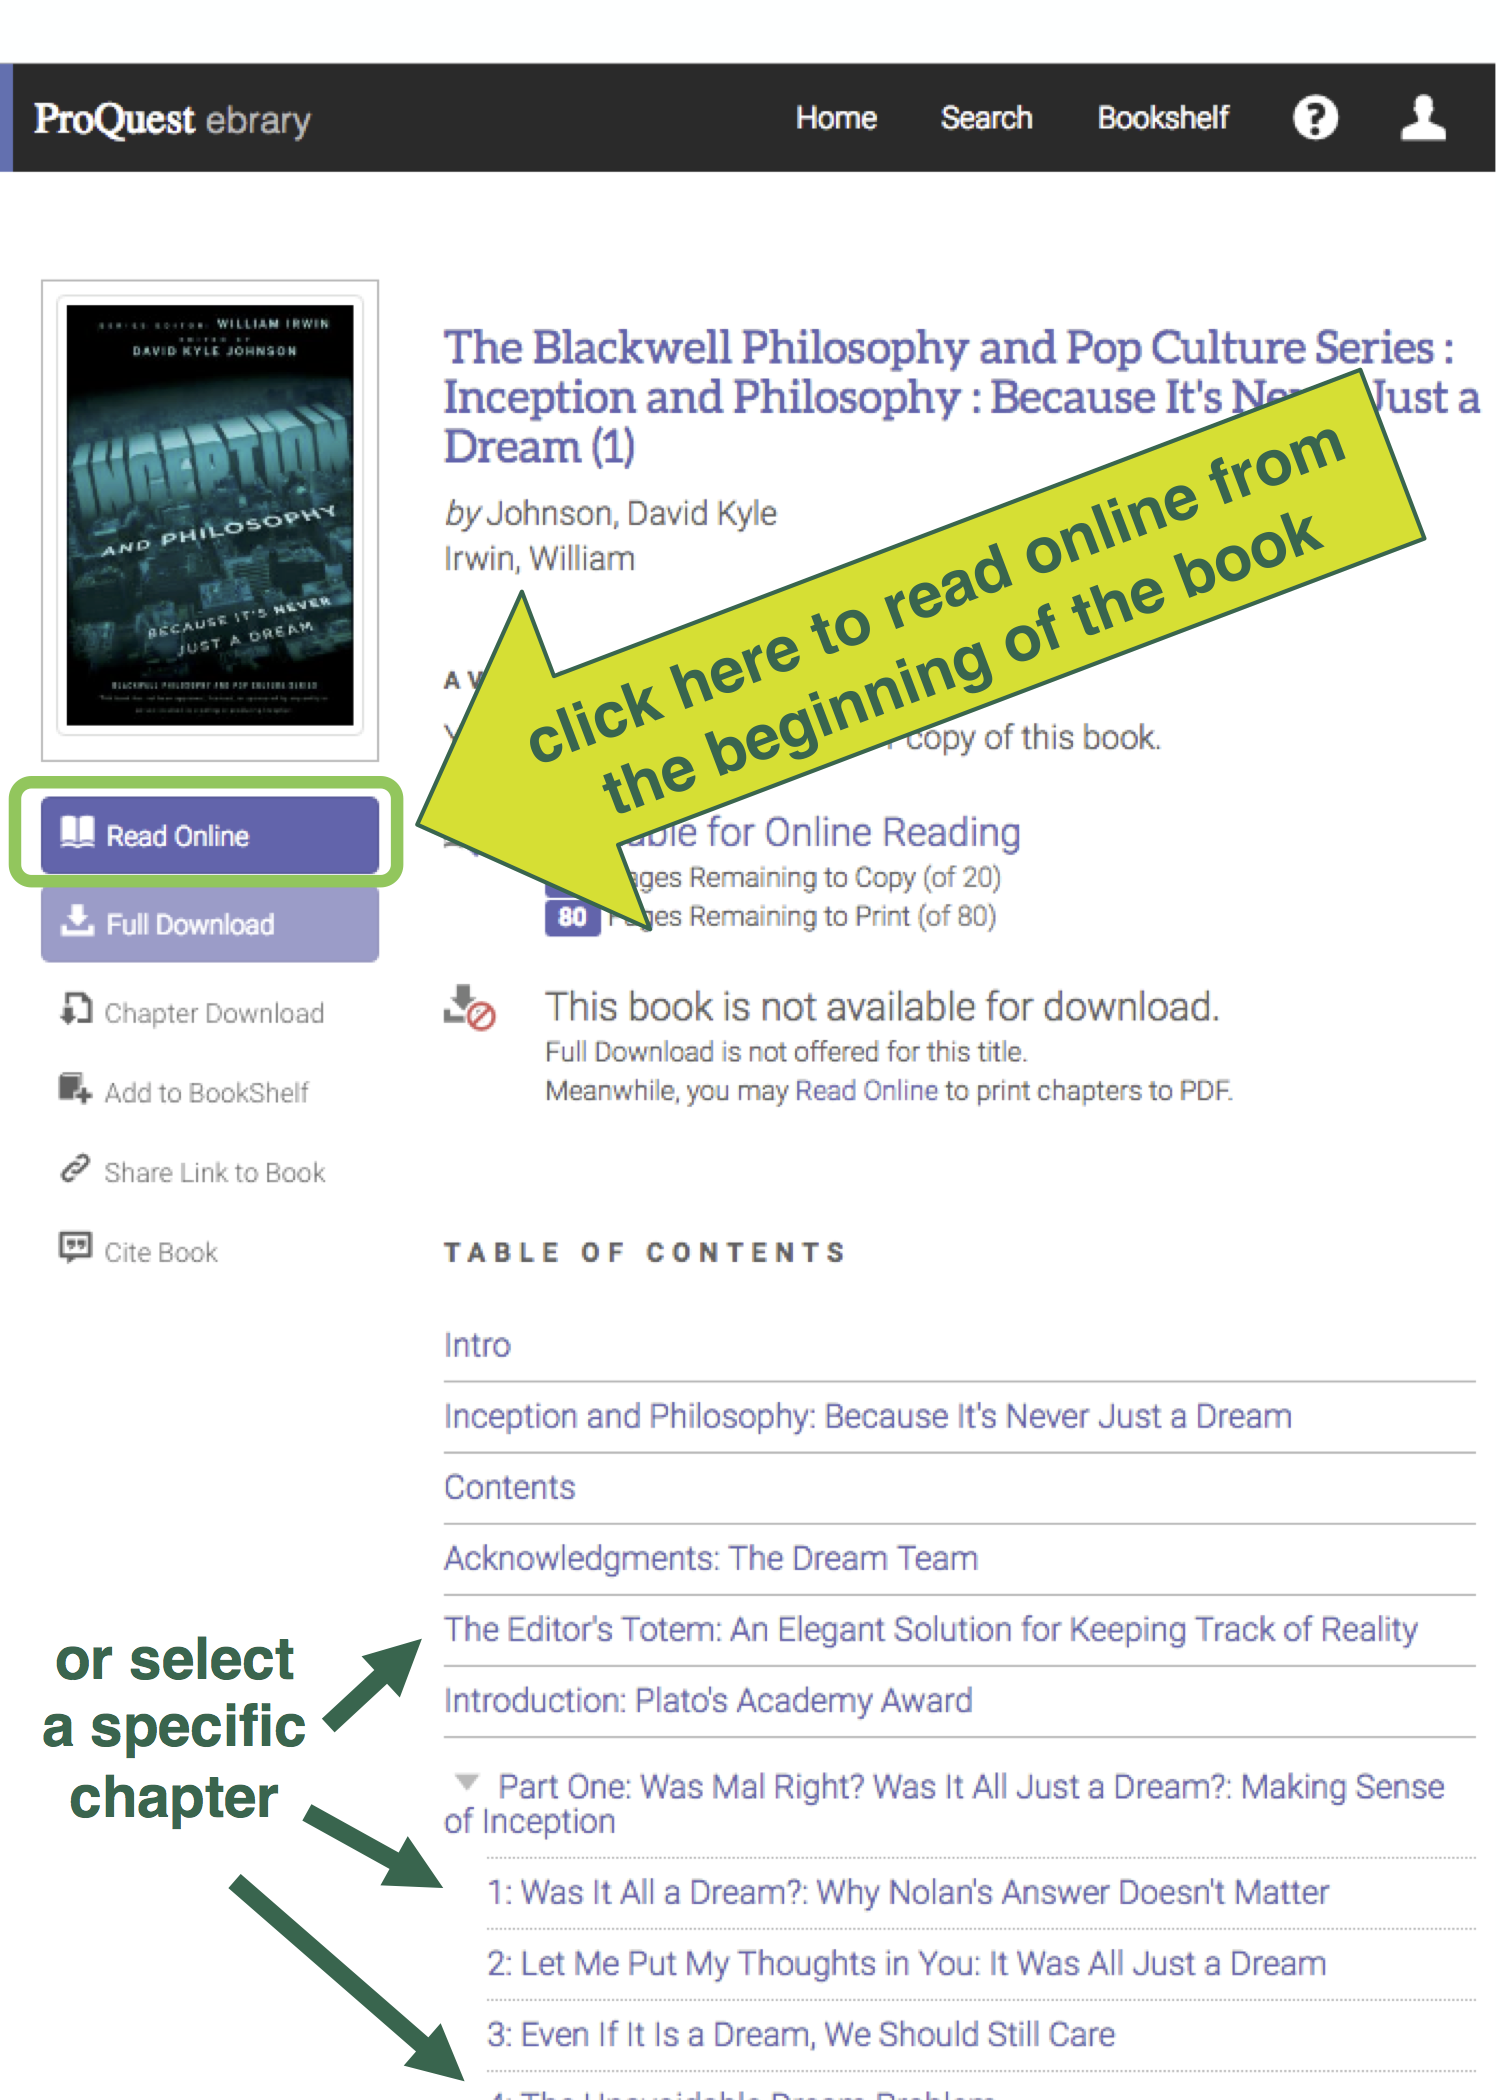 Ebooks finding and using ebooks subject guides at binghamton proquest ebook central is replacing proquest ebrary and the two platforms have nearly identical interfaces screenshots of ebook central will be added fandeluxe Choice Image